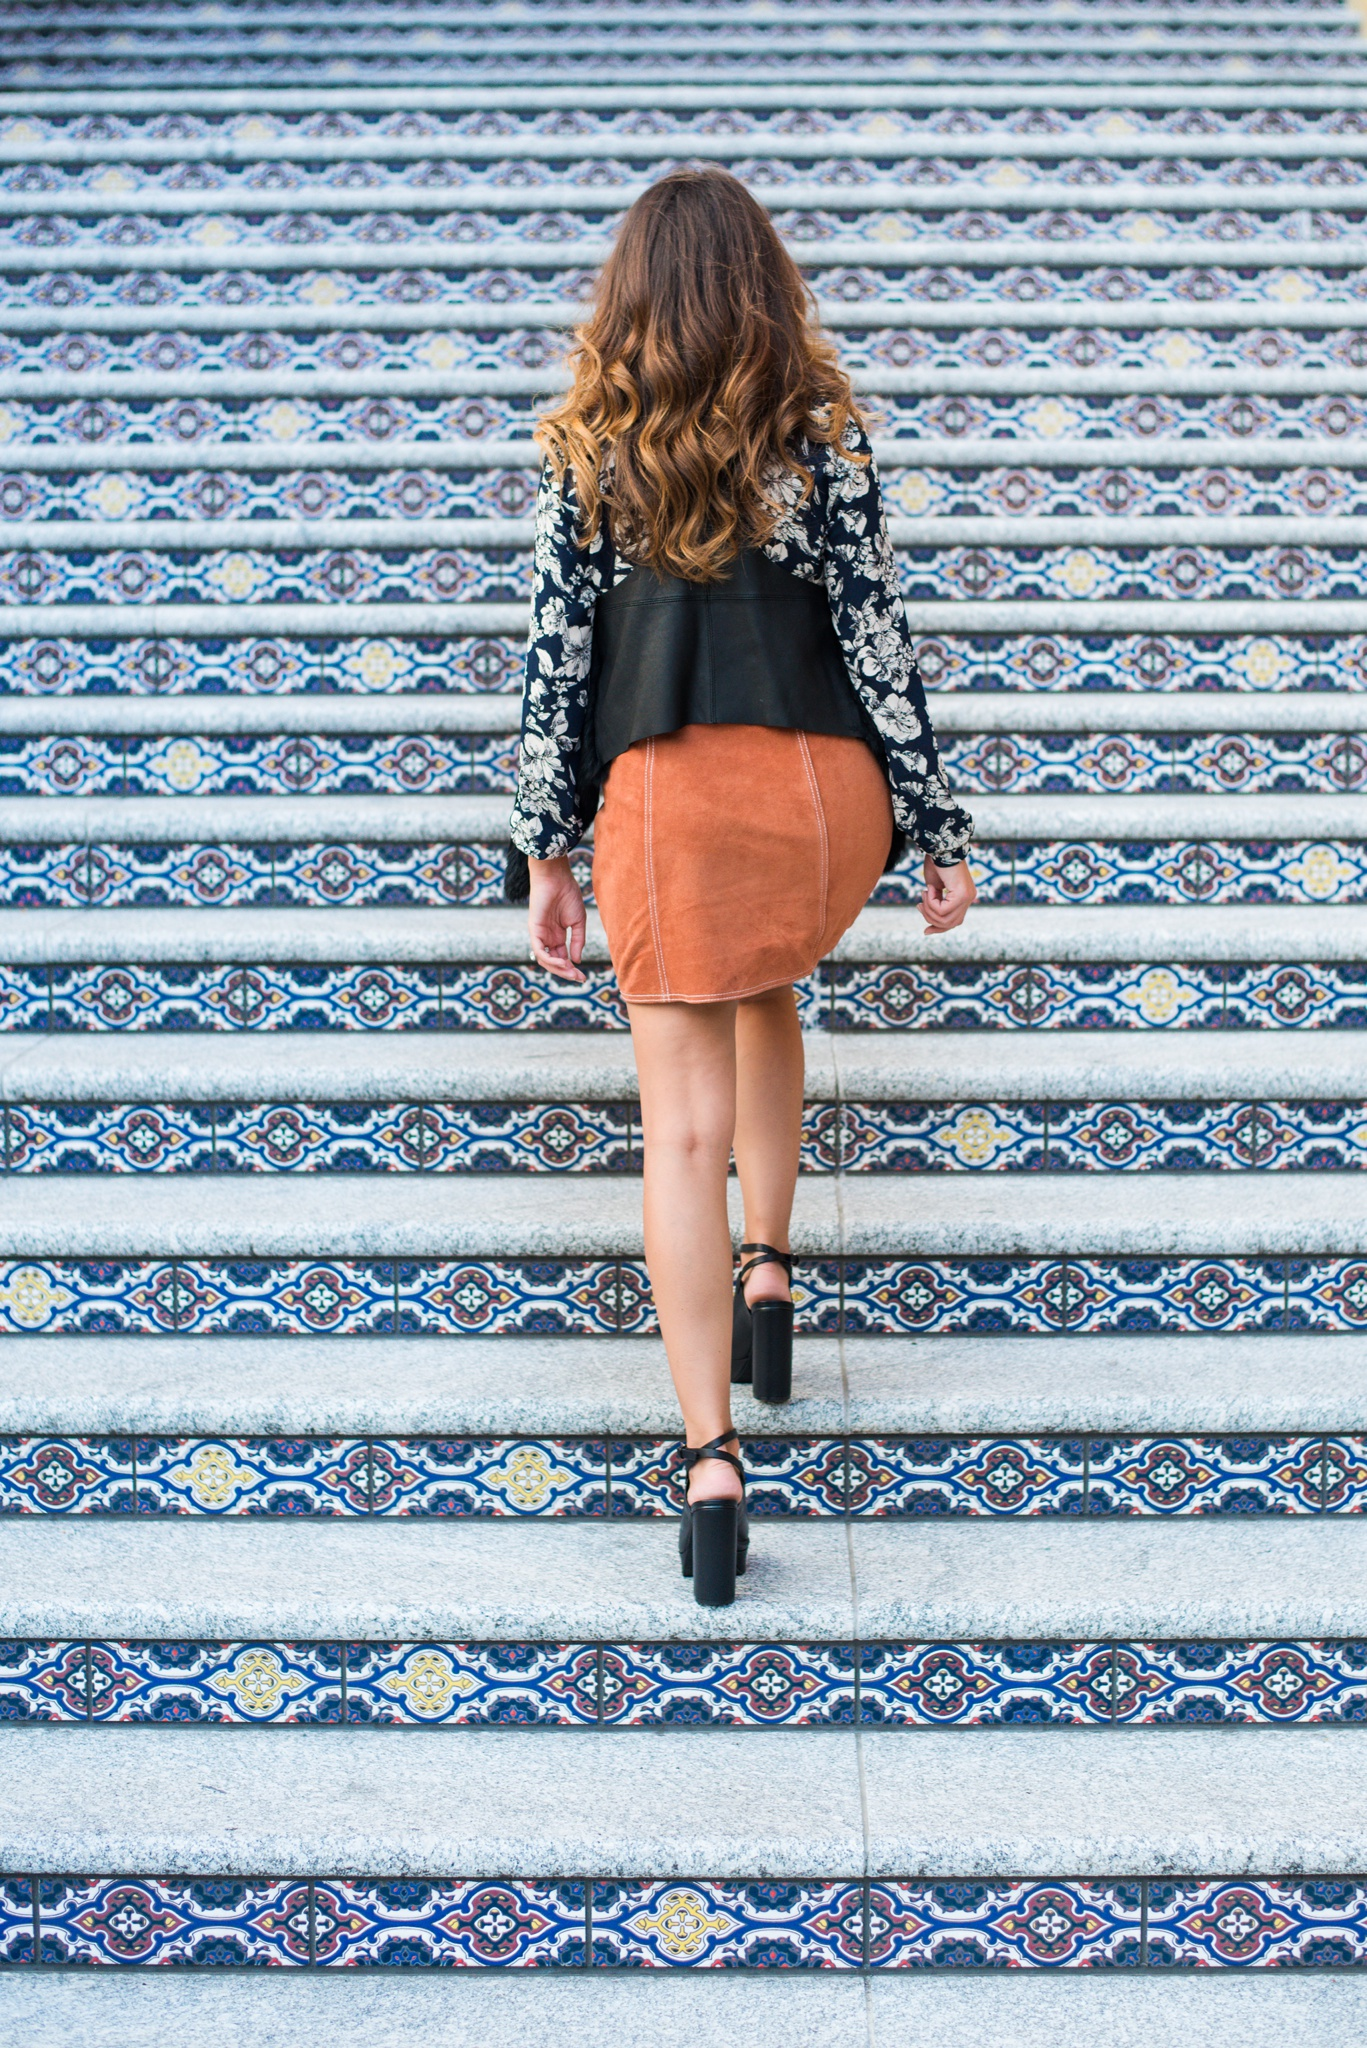 Fall 2015 Fashion Ideas. Great shopping tips and links to purchase some of the hottest trends of the fall. -- TheNewMrsAllen.com